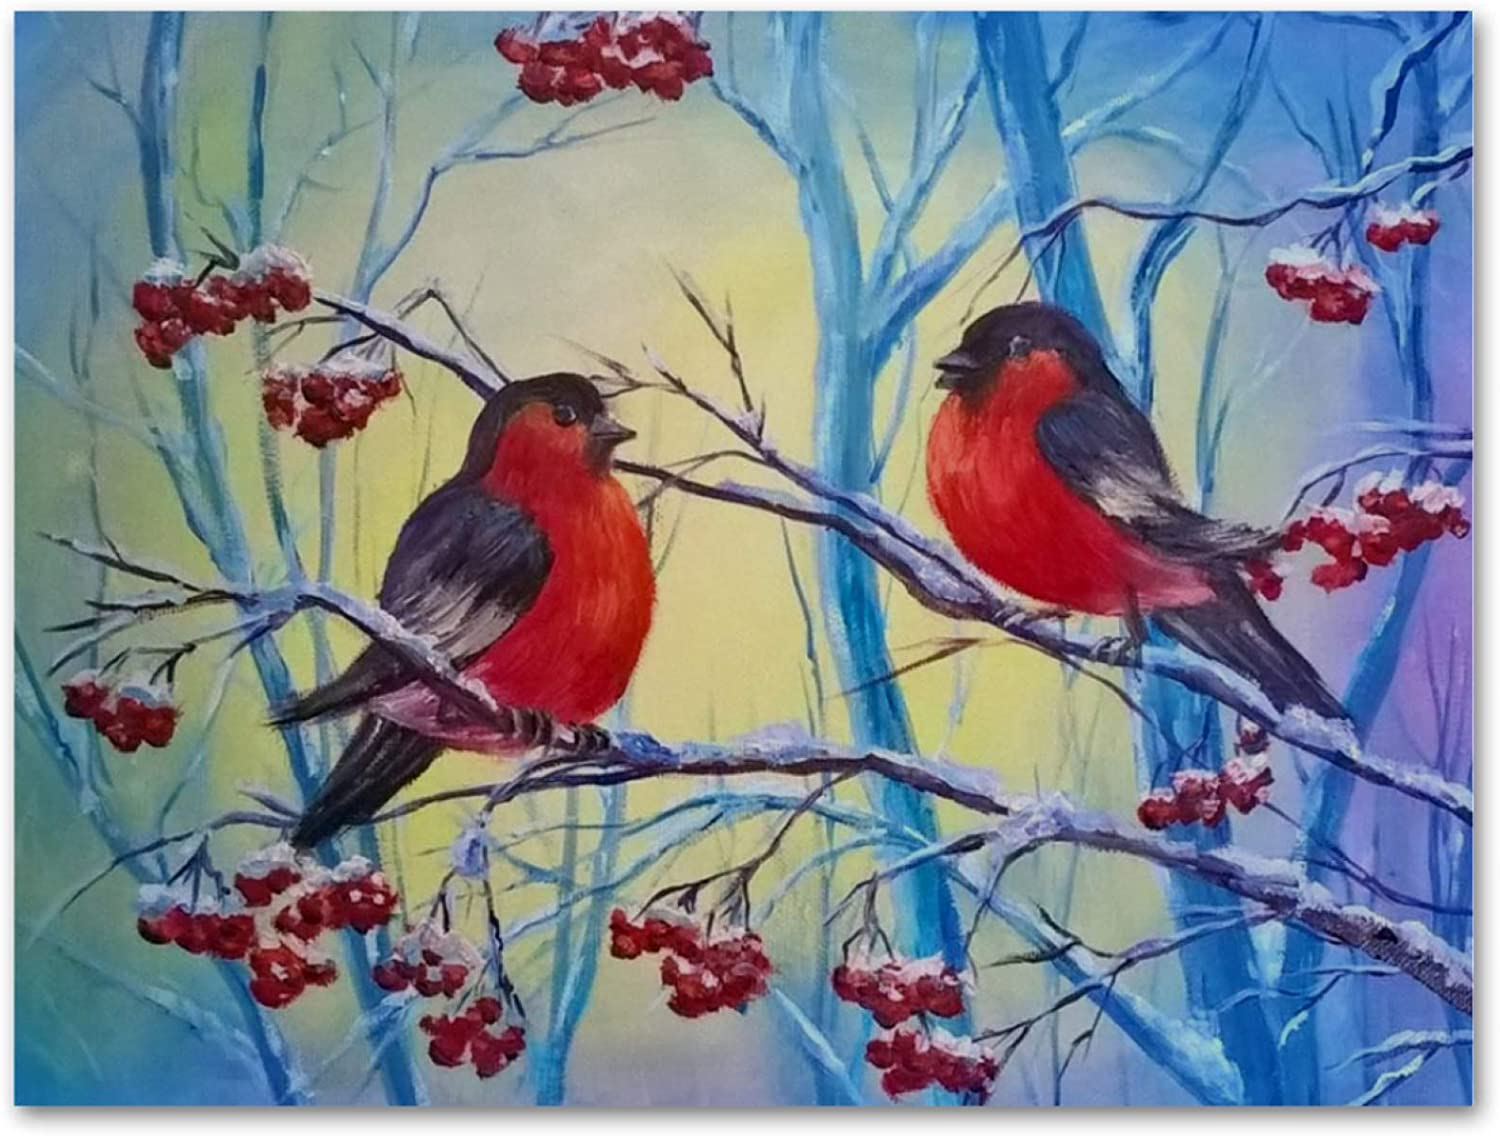 imobaby Oil Painting on Canvas Couple Bullfinch Birds Prints with Wooden Frame for Bedroom Home Living Room Office Modern Wall Art Decor, 11.8x19.6 in